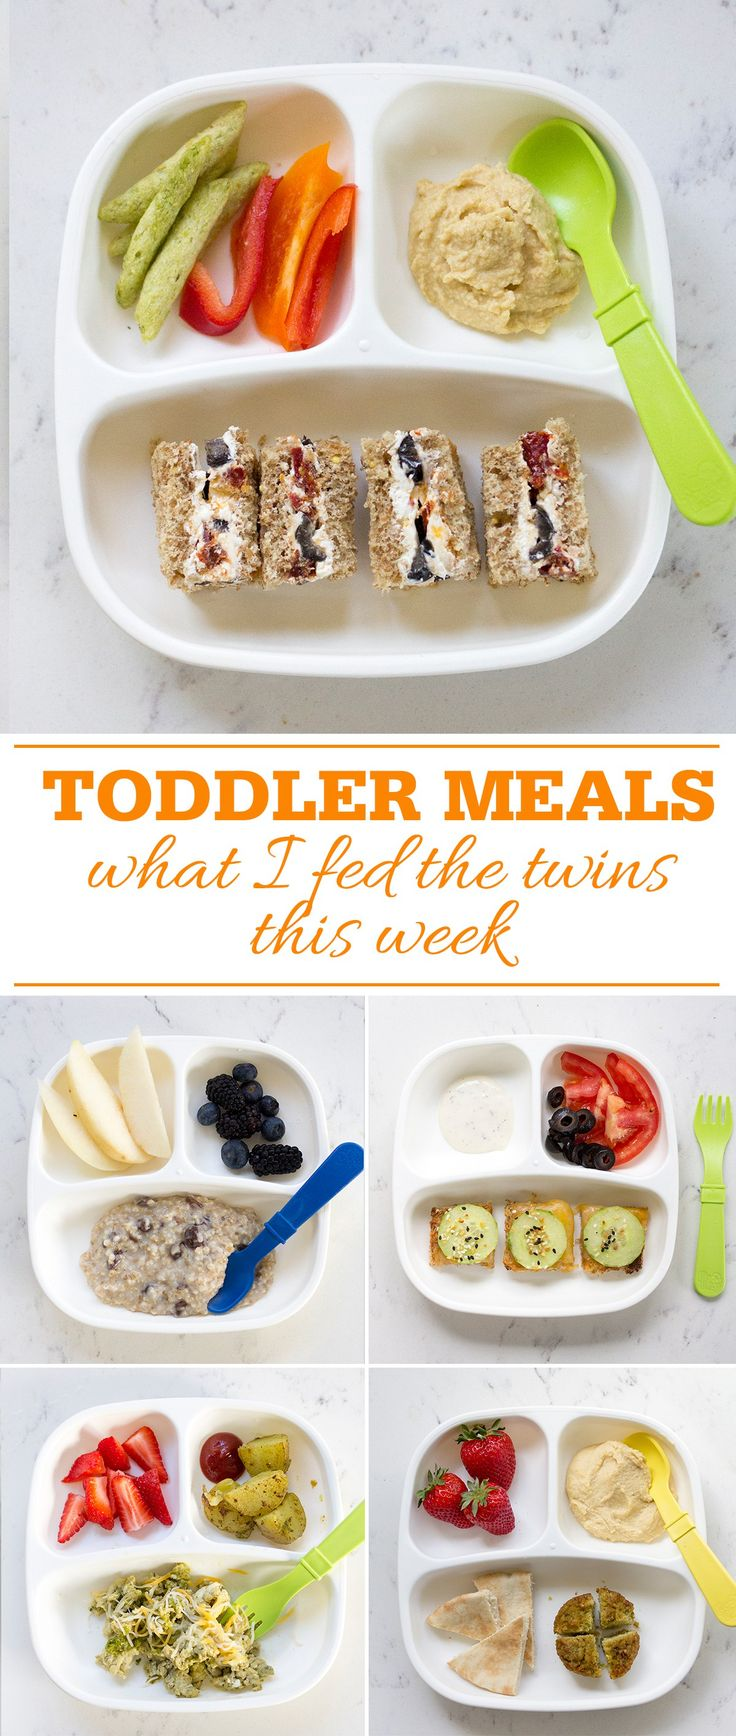 Toddler recipes | Healthy Indian toddler food recipes for ...